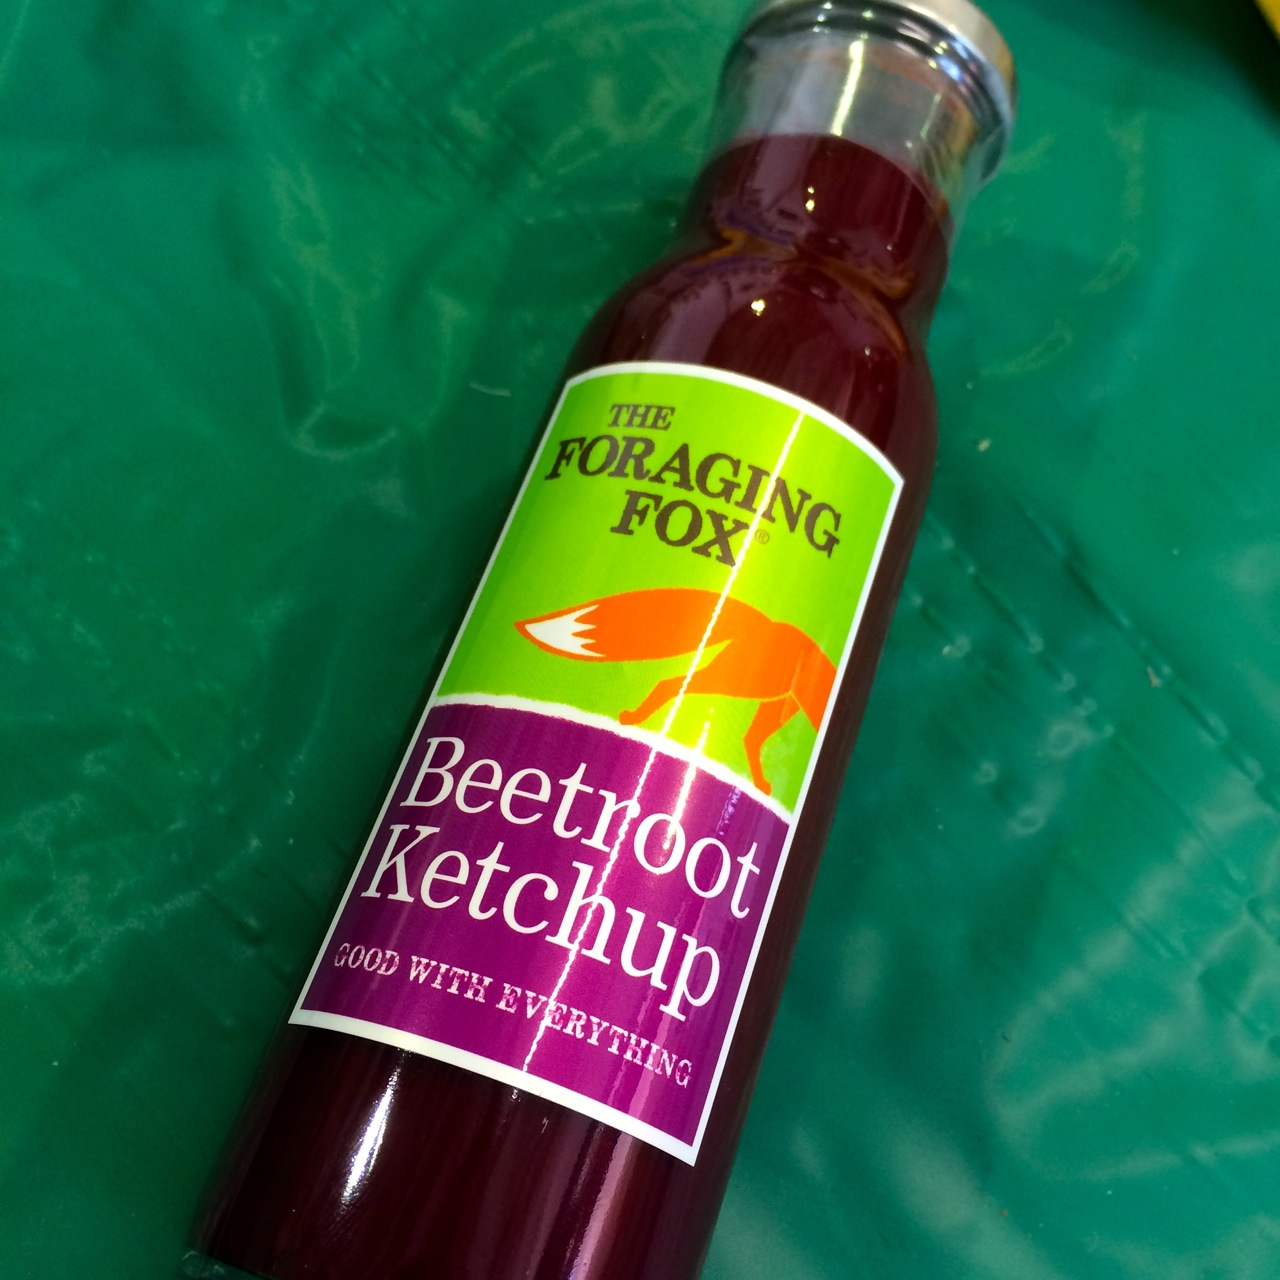 https://i2.wp.com/fatgayvegan.com/wp-content/uploads/2015/09/beetroot-ketchup.jpg?fit=1280%2C1280